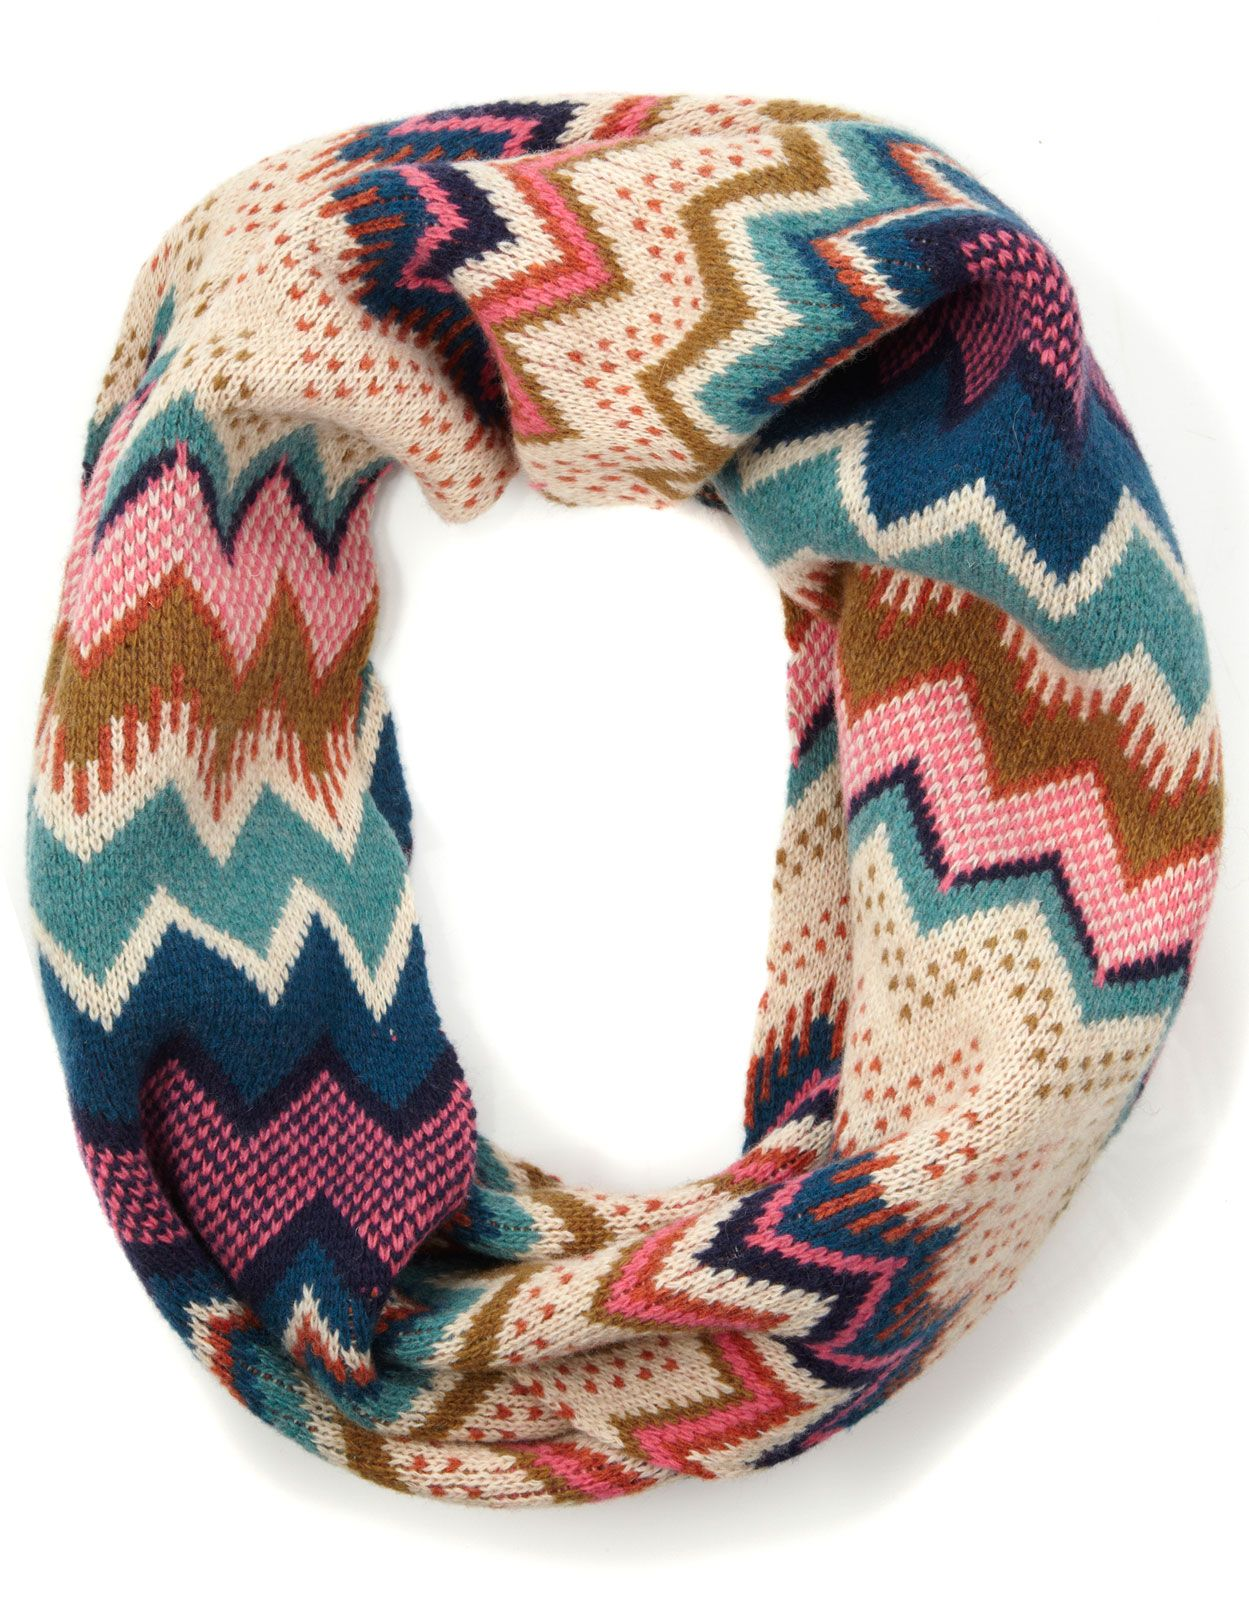 Chevron Snood | Pattern Designs - By Category | Pinterest | Snood ...